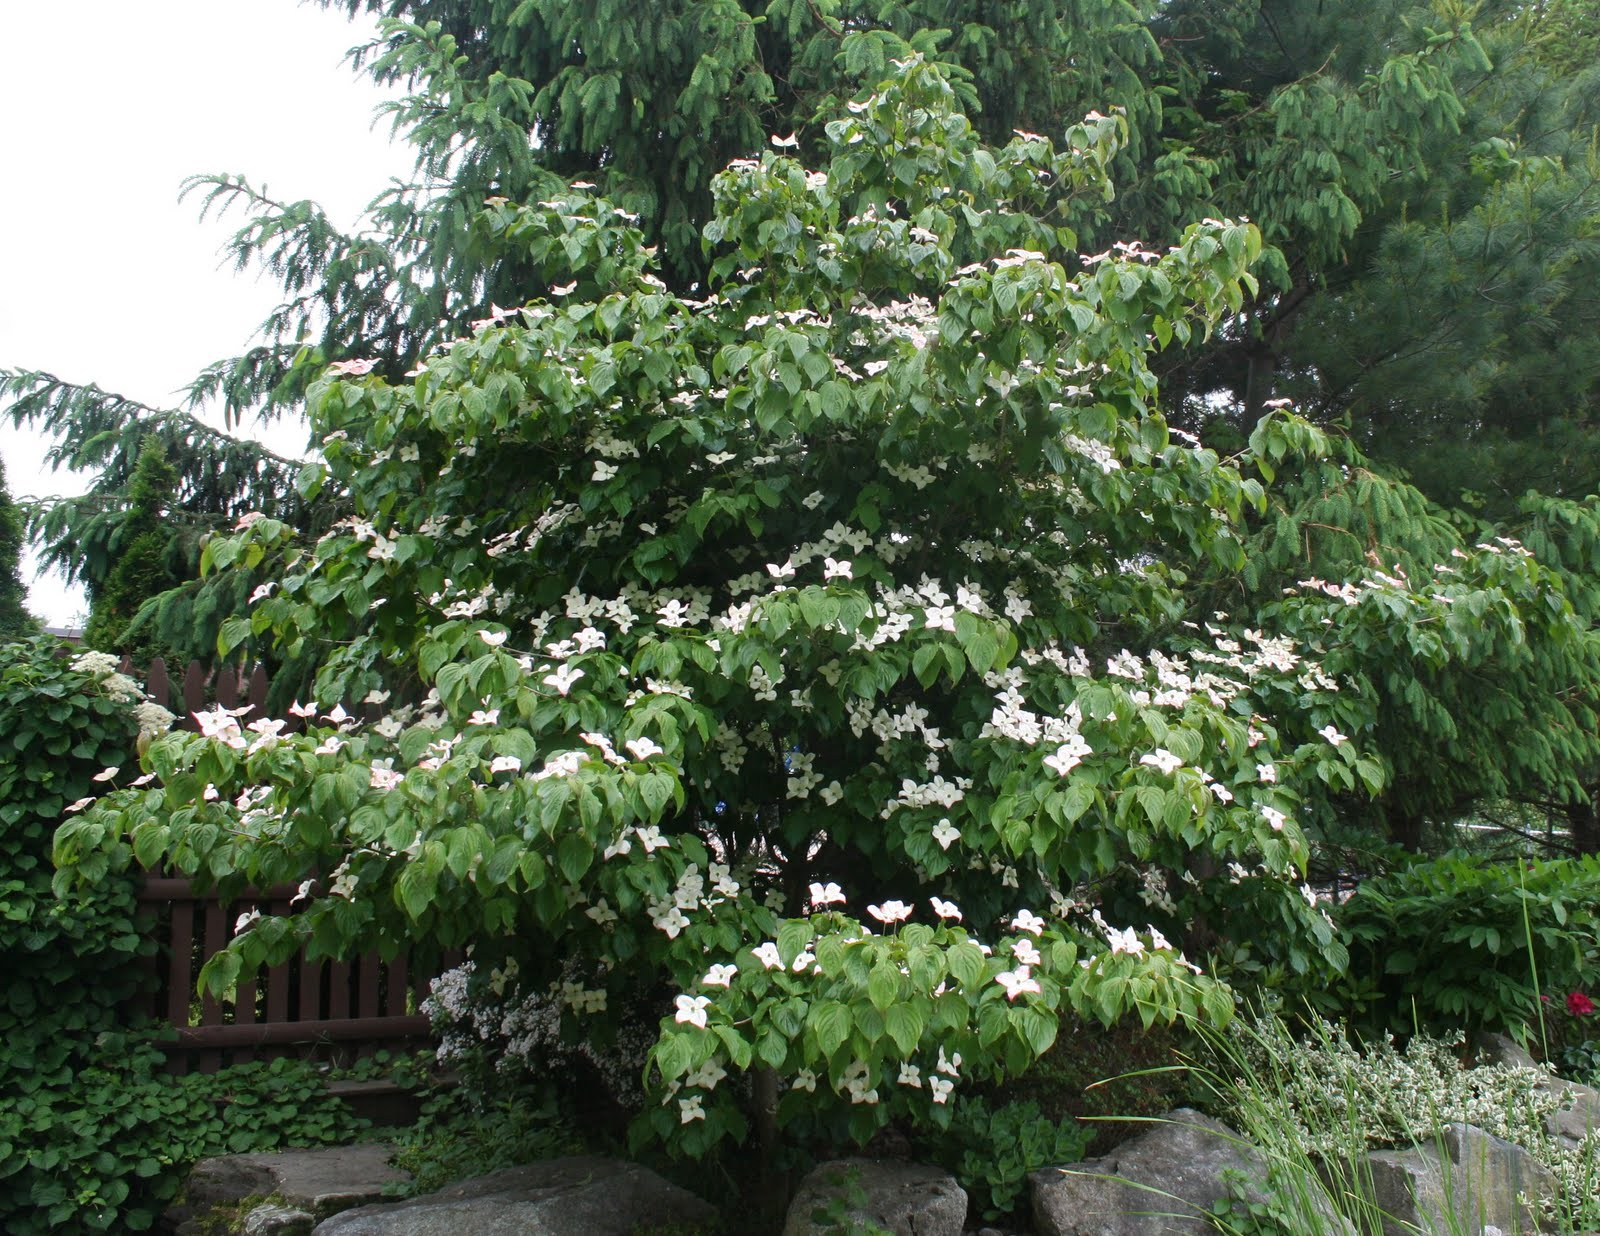 Our Garden Journal: Who Put the Dog in Dogwood